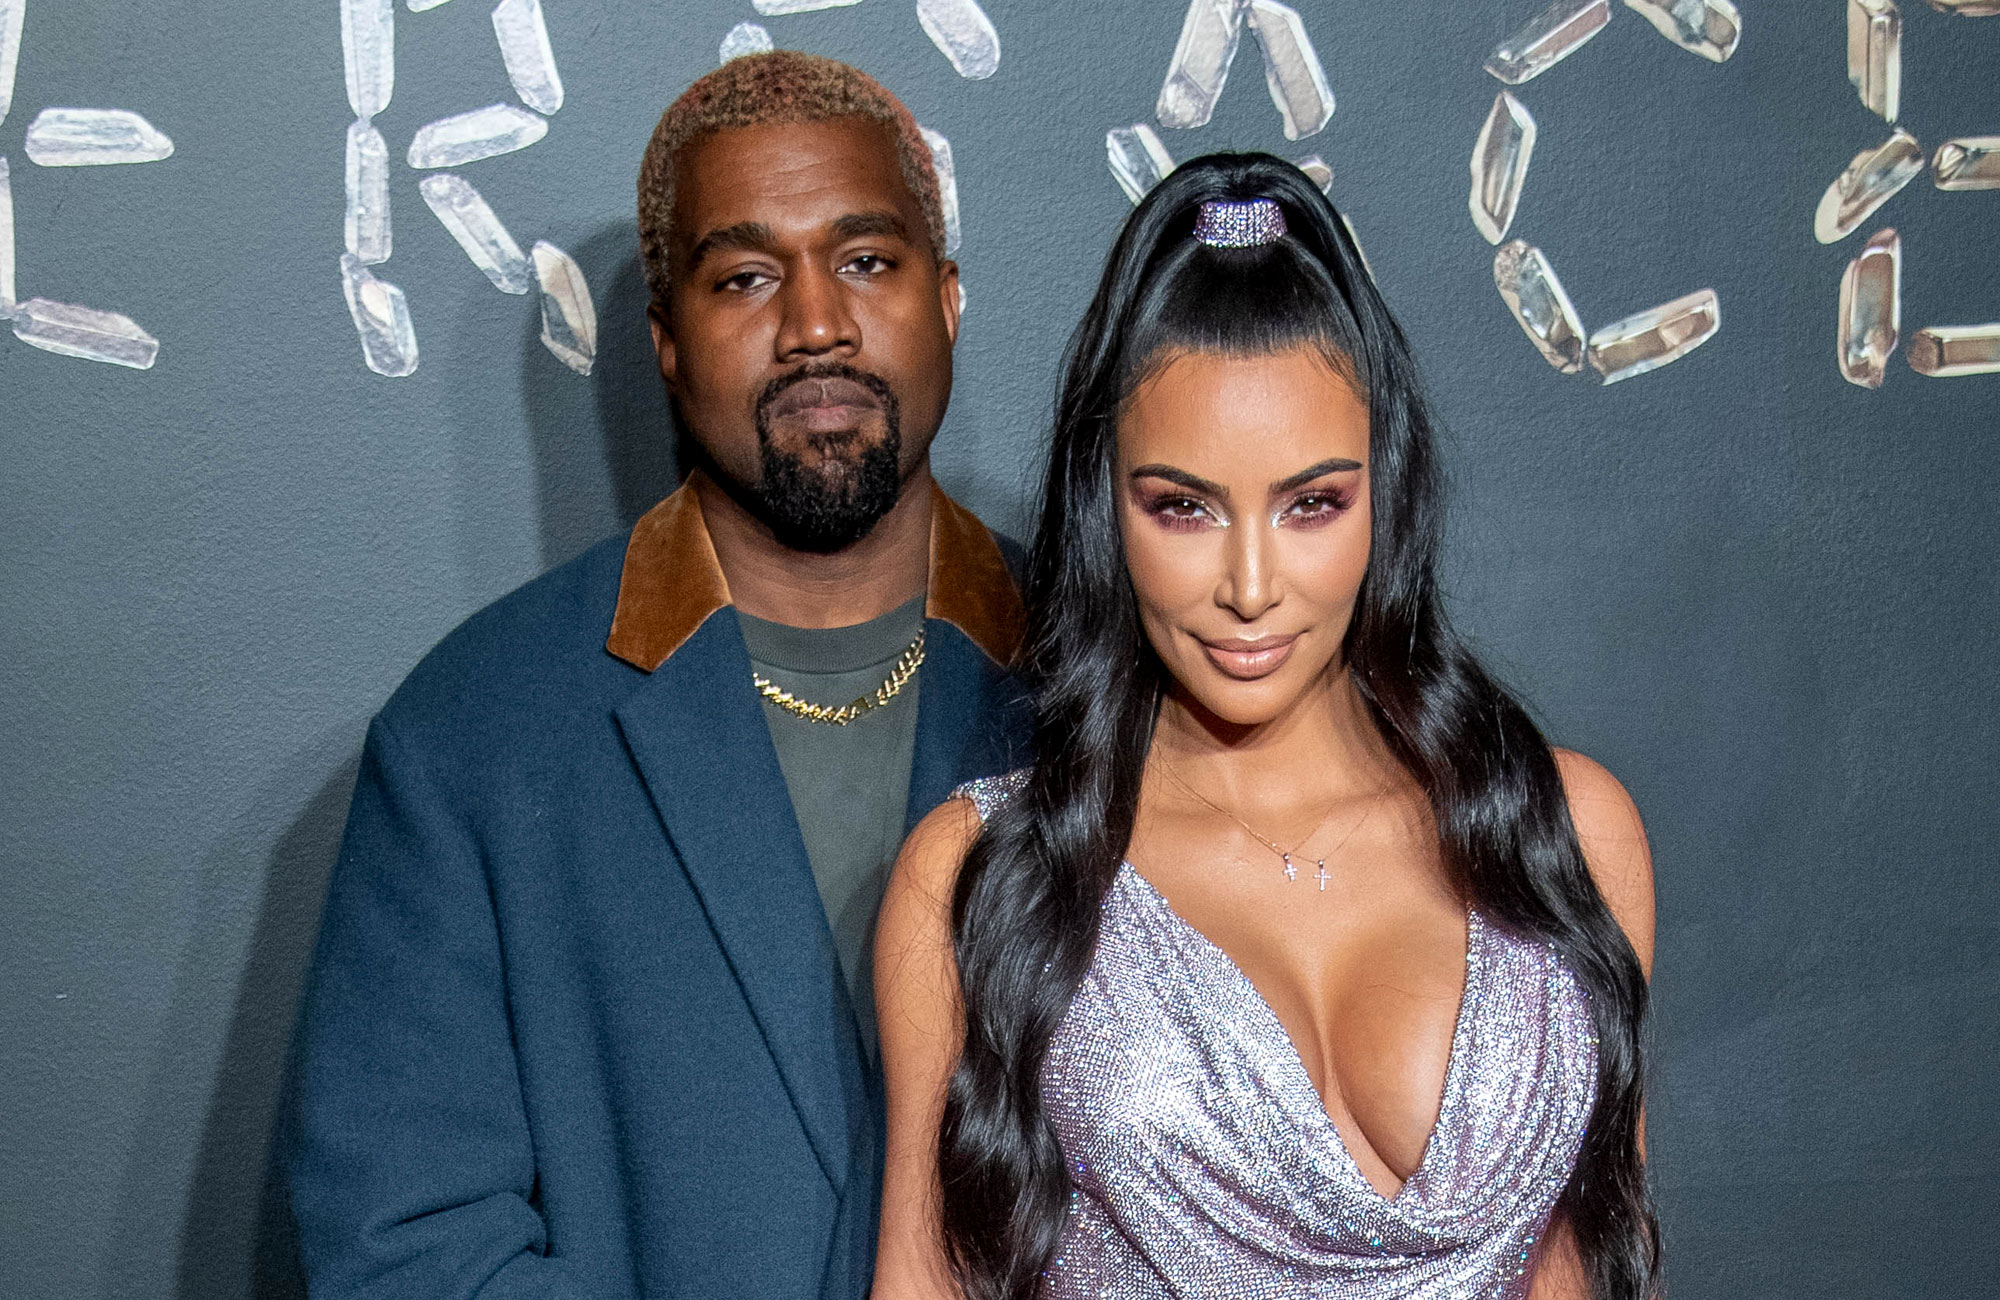 Revisit the 5 Most Kimye Things the Power Couple Have Done Versace fall 2019 fashion show - Kanye West and Kim Kardashian West attend the the Versace fall 2019 fashion show at the American Stock Exchange Building in lower Manhattan on December 02, 2018 in New York City.